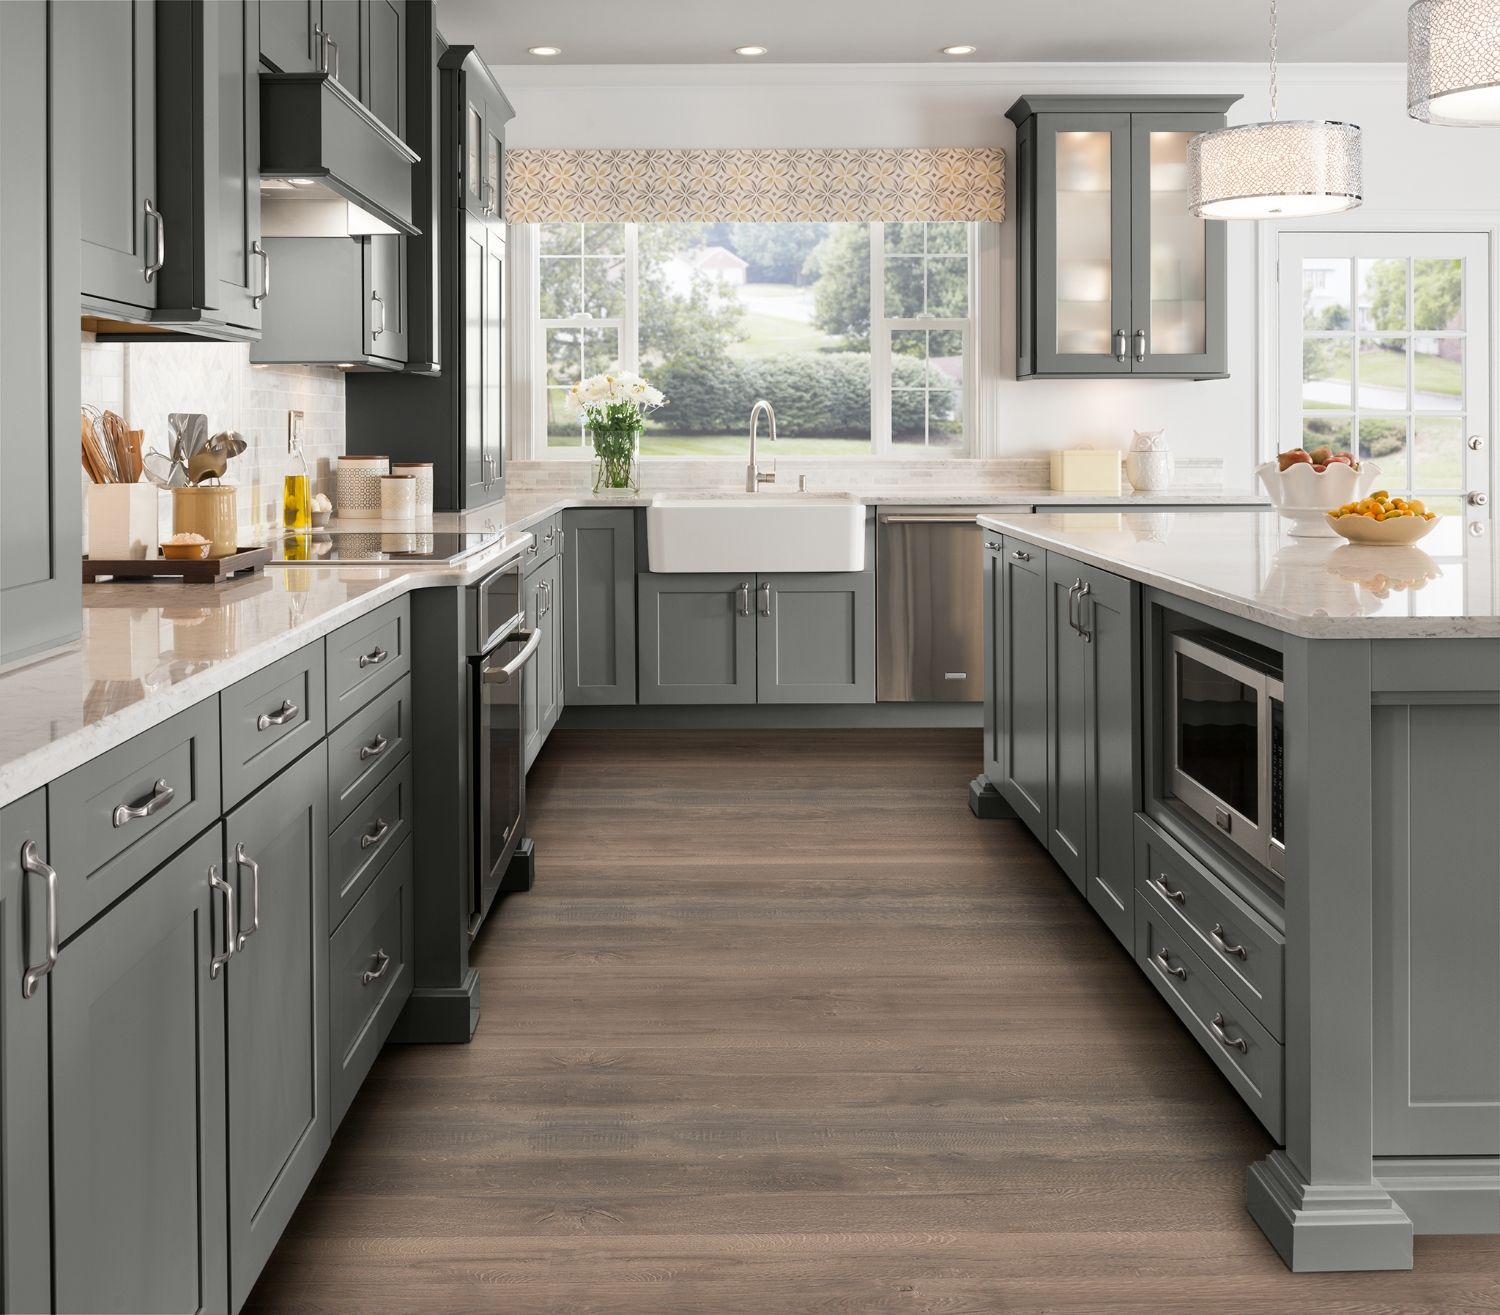 Shaker Style Kitchen Cabinets Mission Collection Shaker Style Kitchen Cabinets Kitchen Cabinet Styles Shaker Style Kitchens